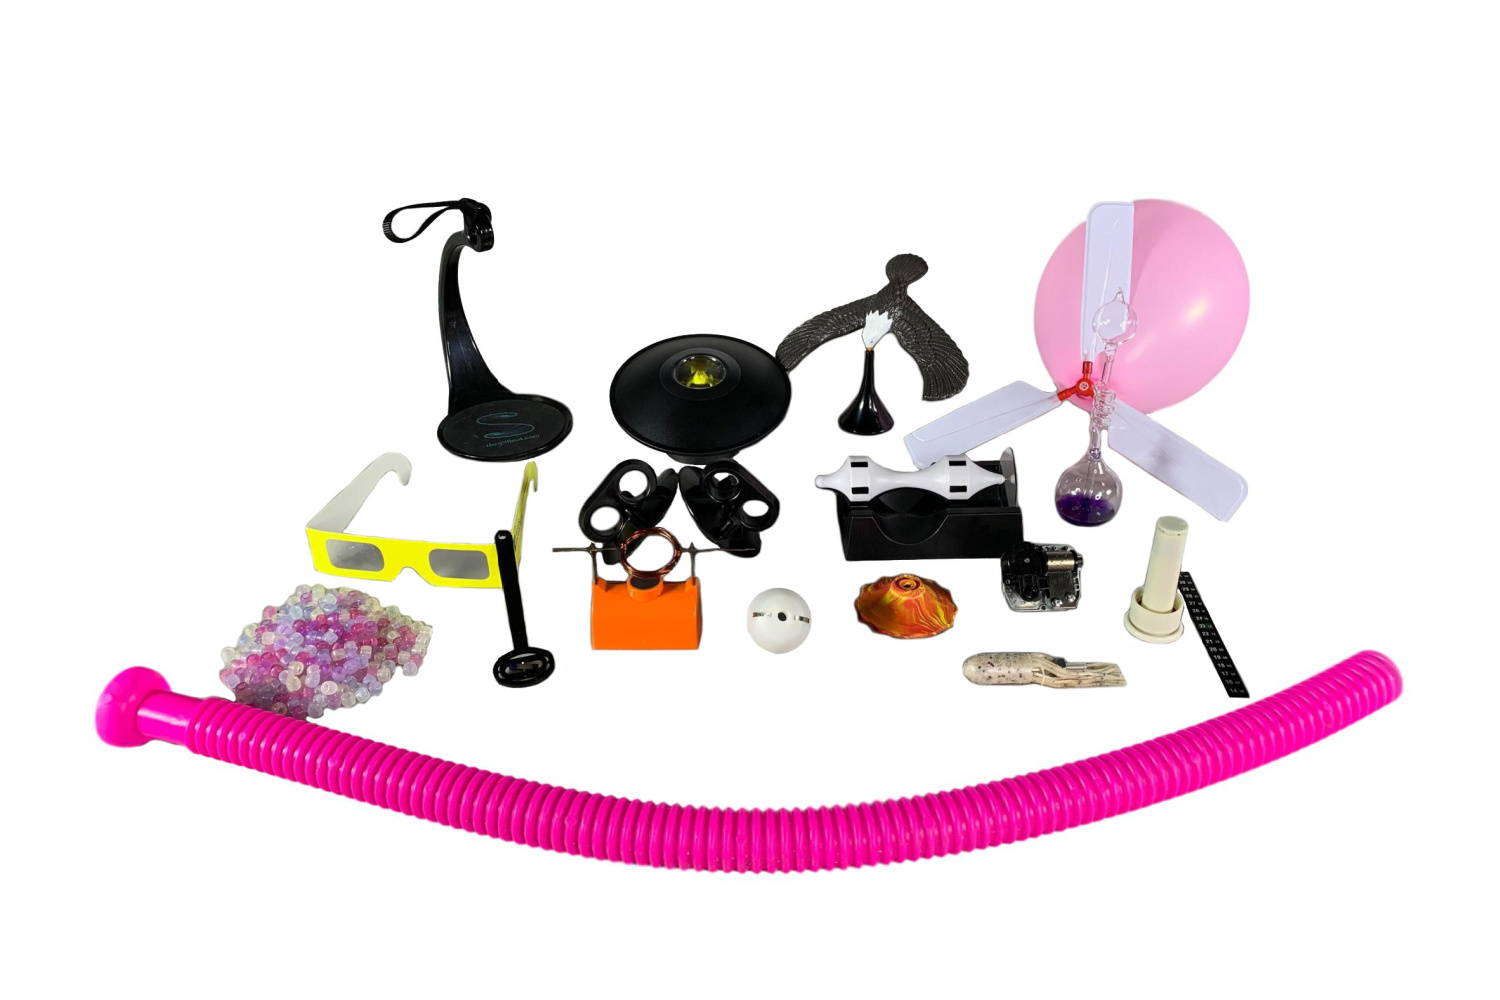 Physics AT HOME Experience Kit